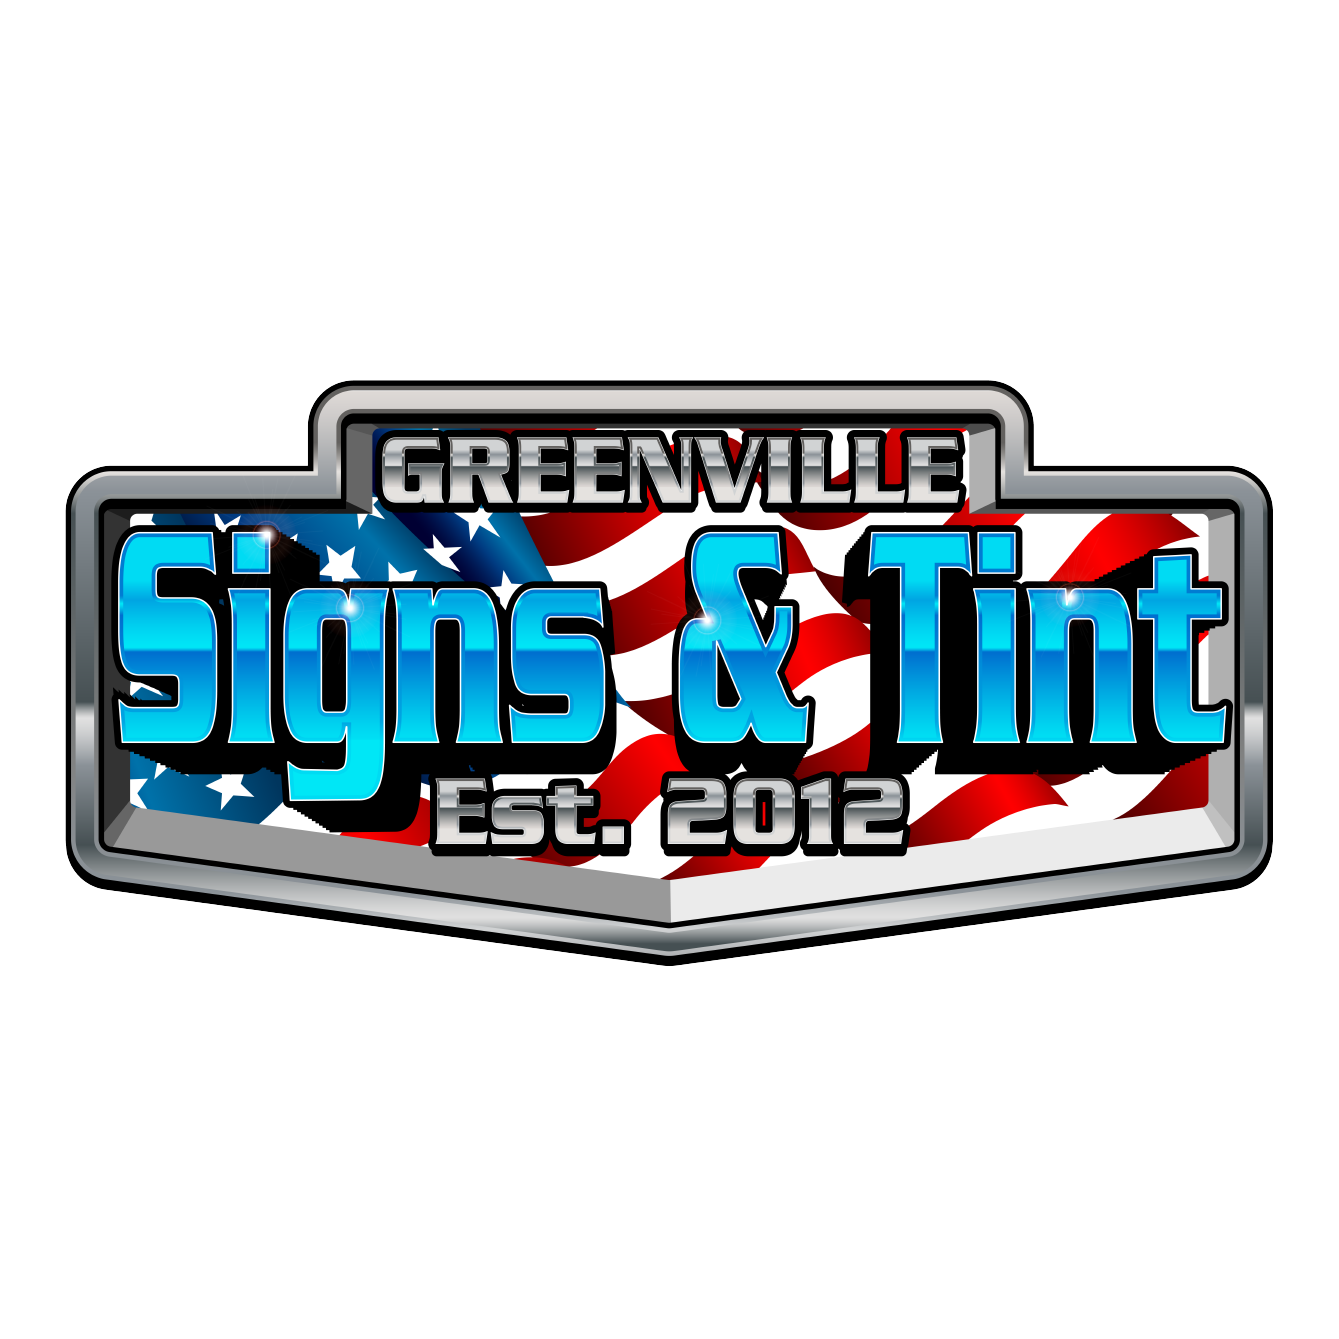 Greenville Signs & Tint image 3